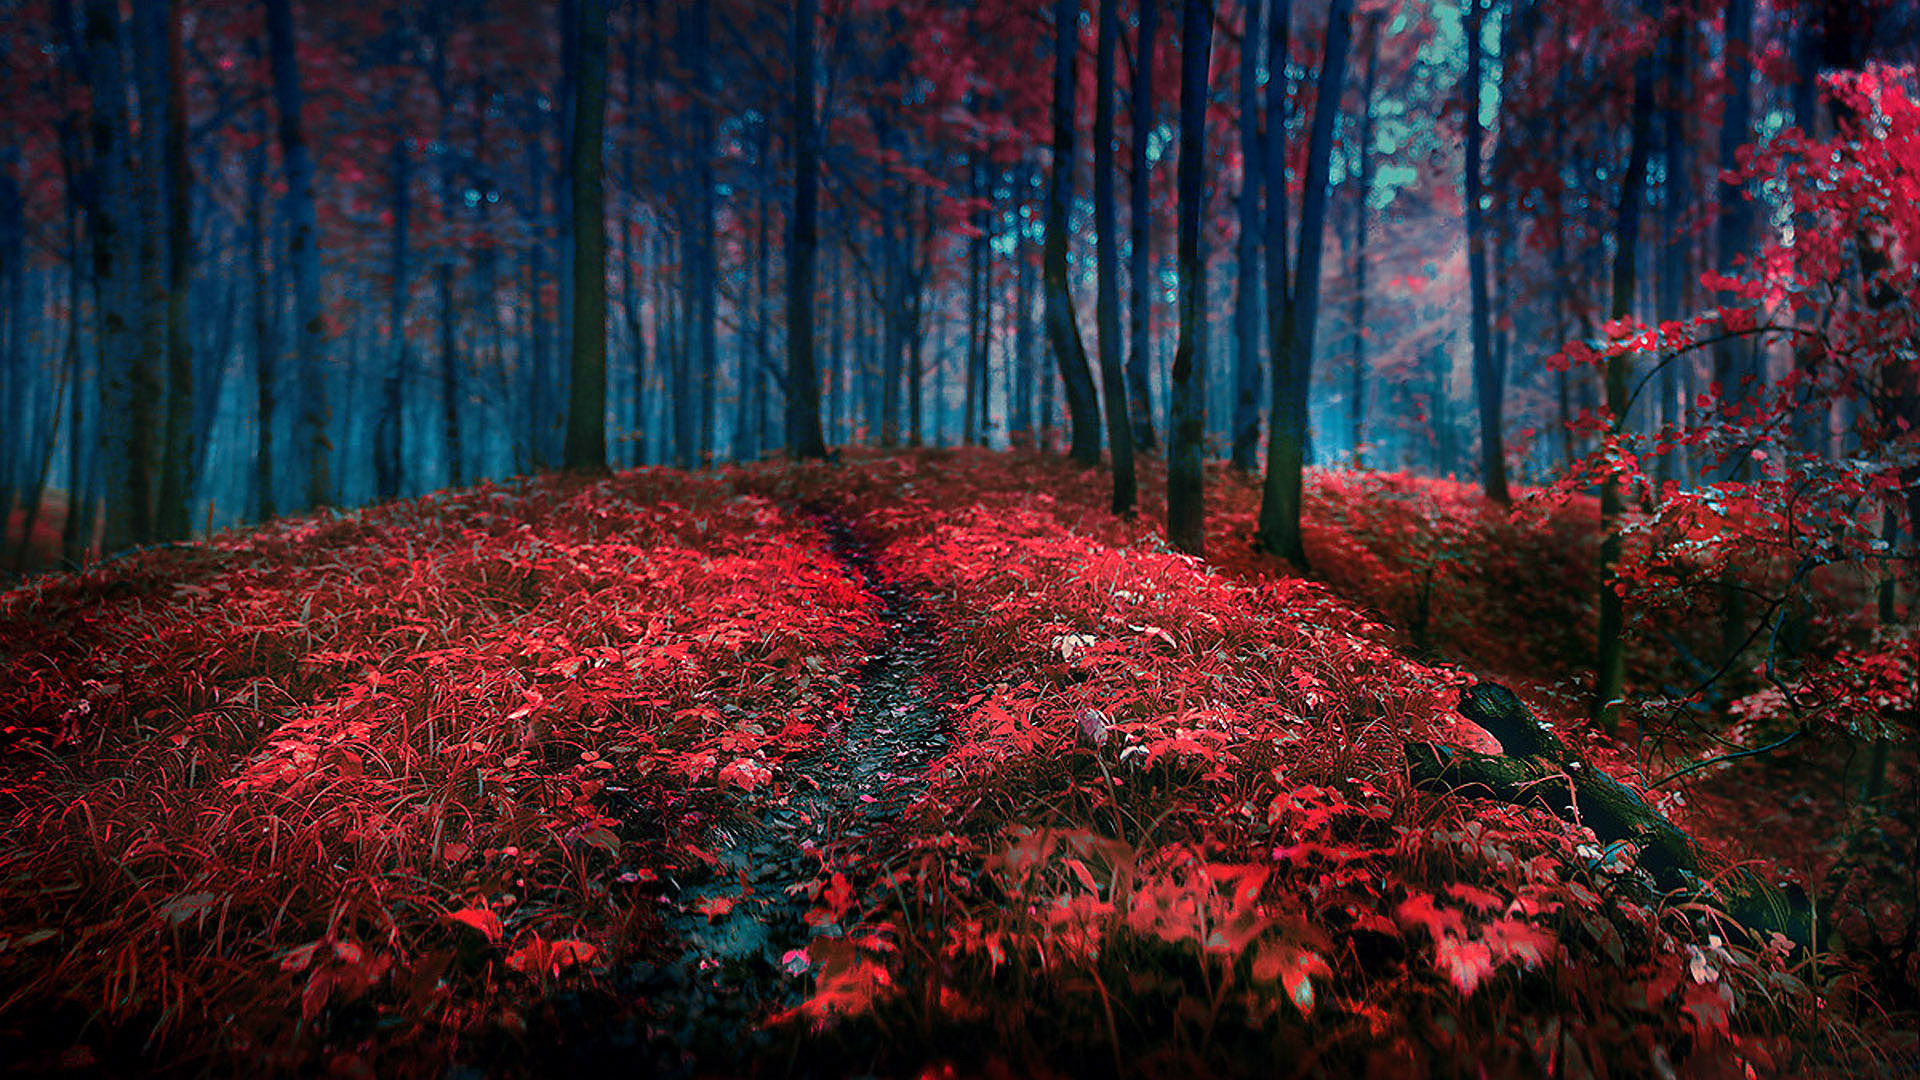 Leaves Wallpaper Fall Landscapes Nature Trees Forest Autumn Fall Seasons Red